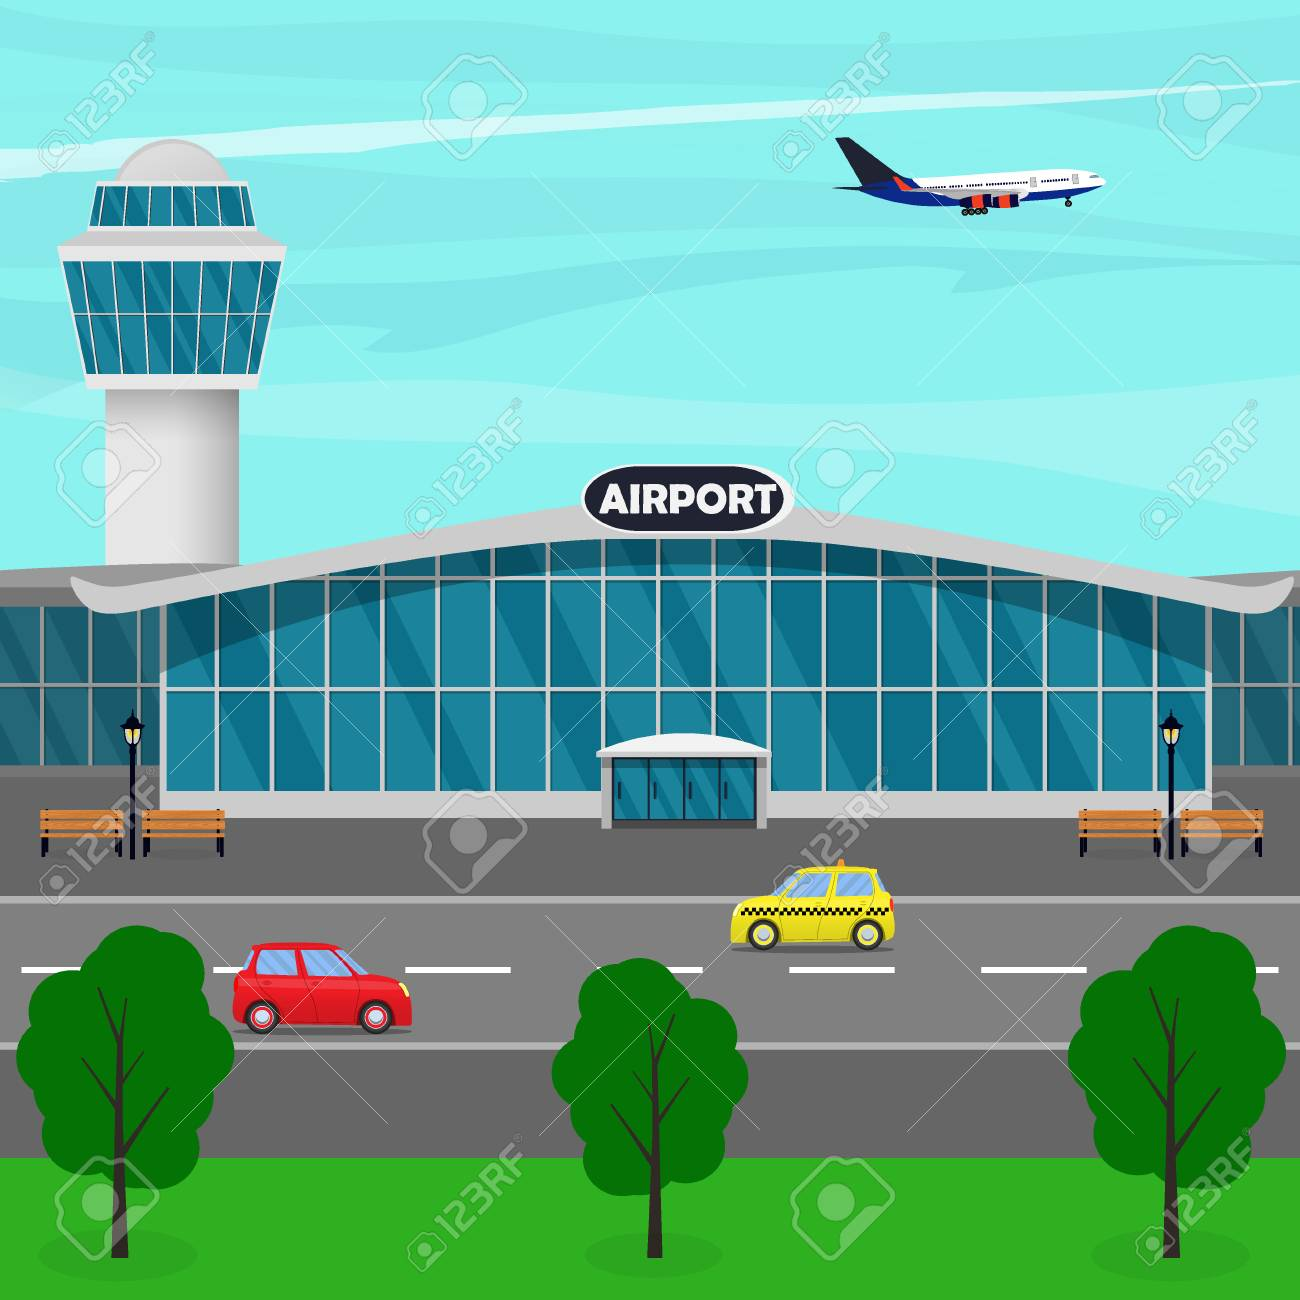 Airport terminal building, control tower, plane taking off, taxi...